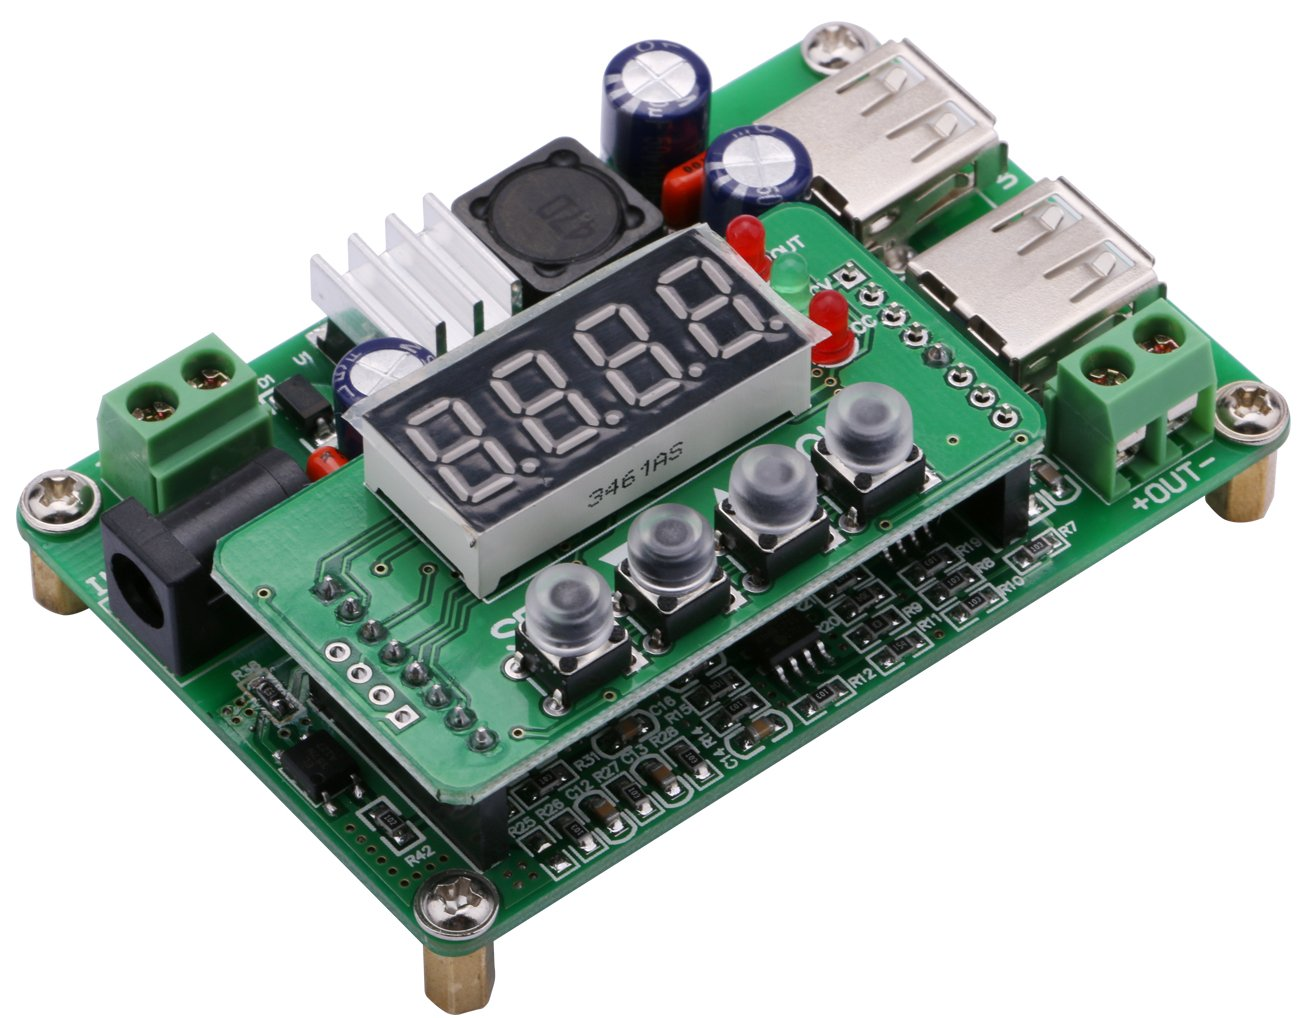 Yeeco Numerical Control DC DC Buck Voltage Converter, 36V 3A Adjustable Digital Step Down Voltage Regulator Stablizer CC CV Power Transformer Supply LED Driver Module Board with USB2.0 Output Port